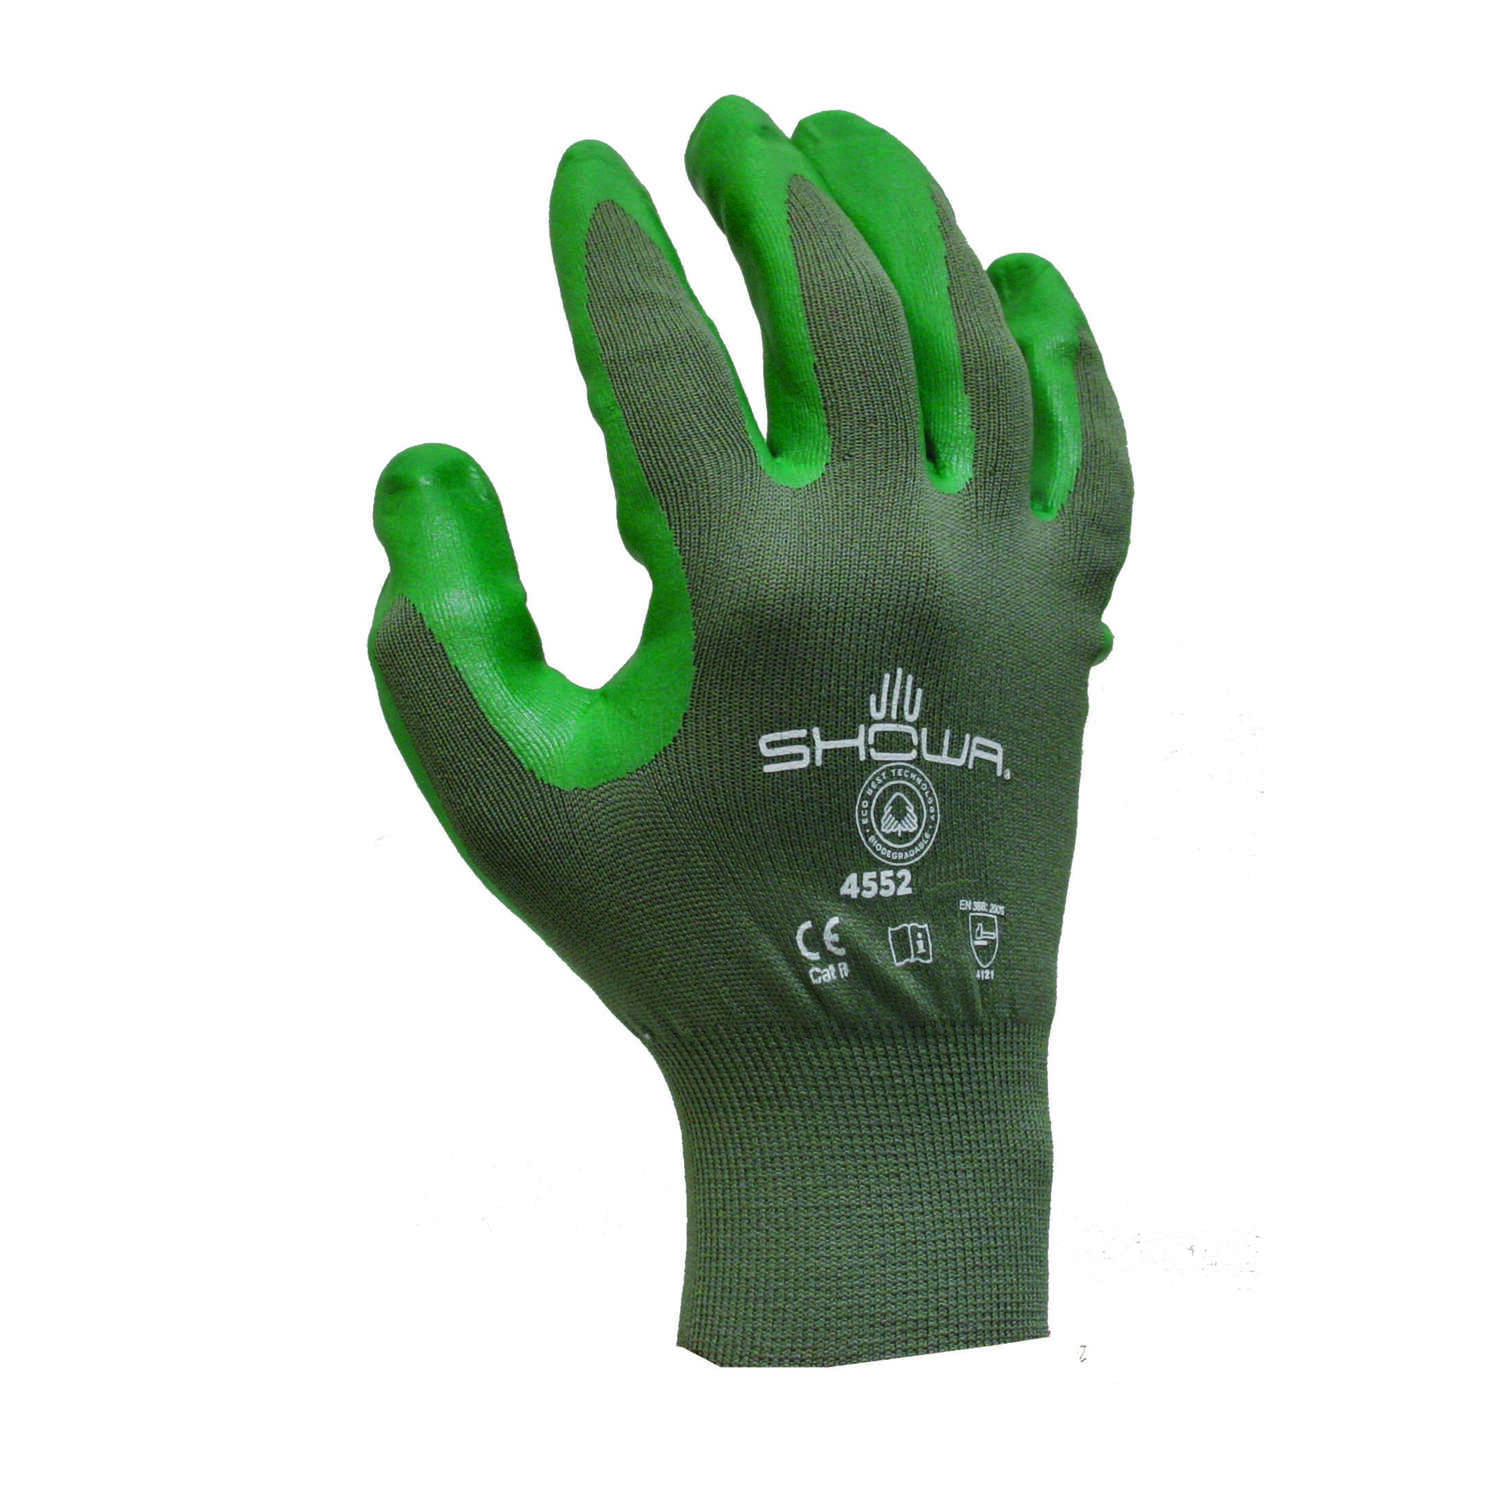 Showa  Unisex  Indoor/Outdoor  Nitrile  Coated  Work Gloves  Green  S